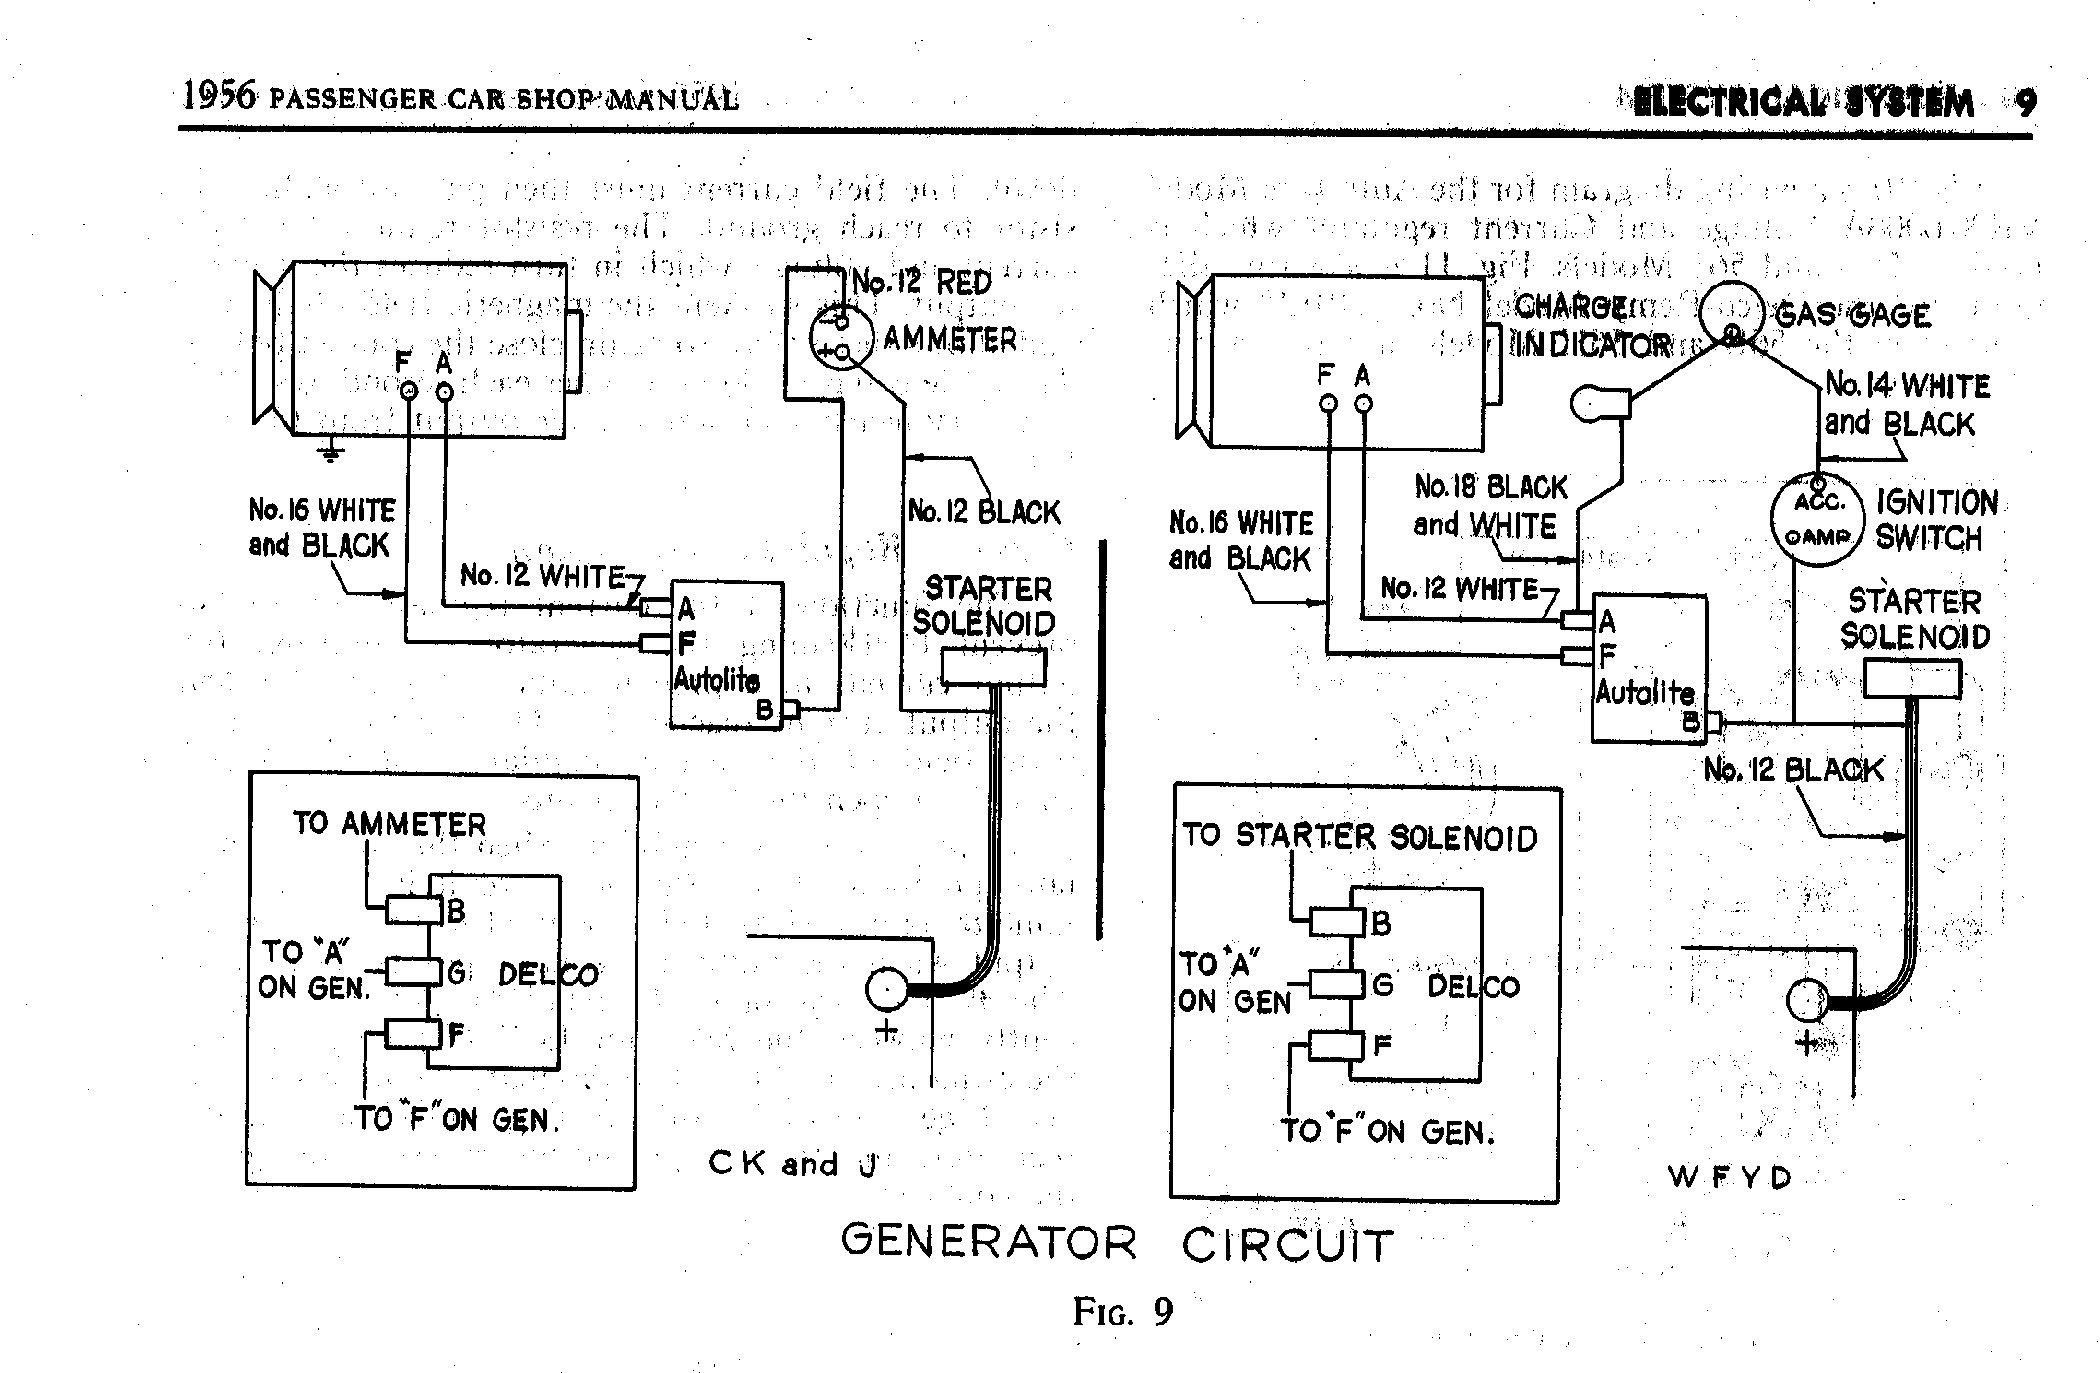 New Wiring Diagram Hitachi Starter Generator Diagram